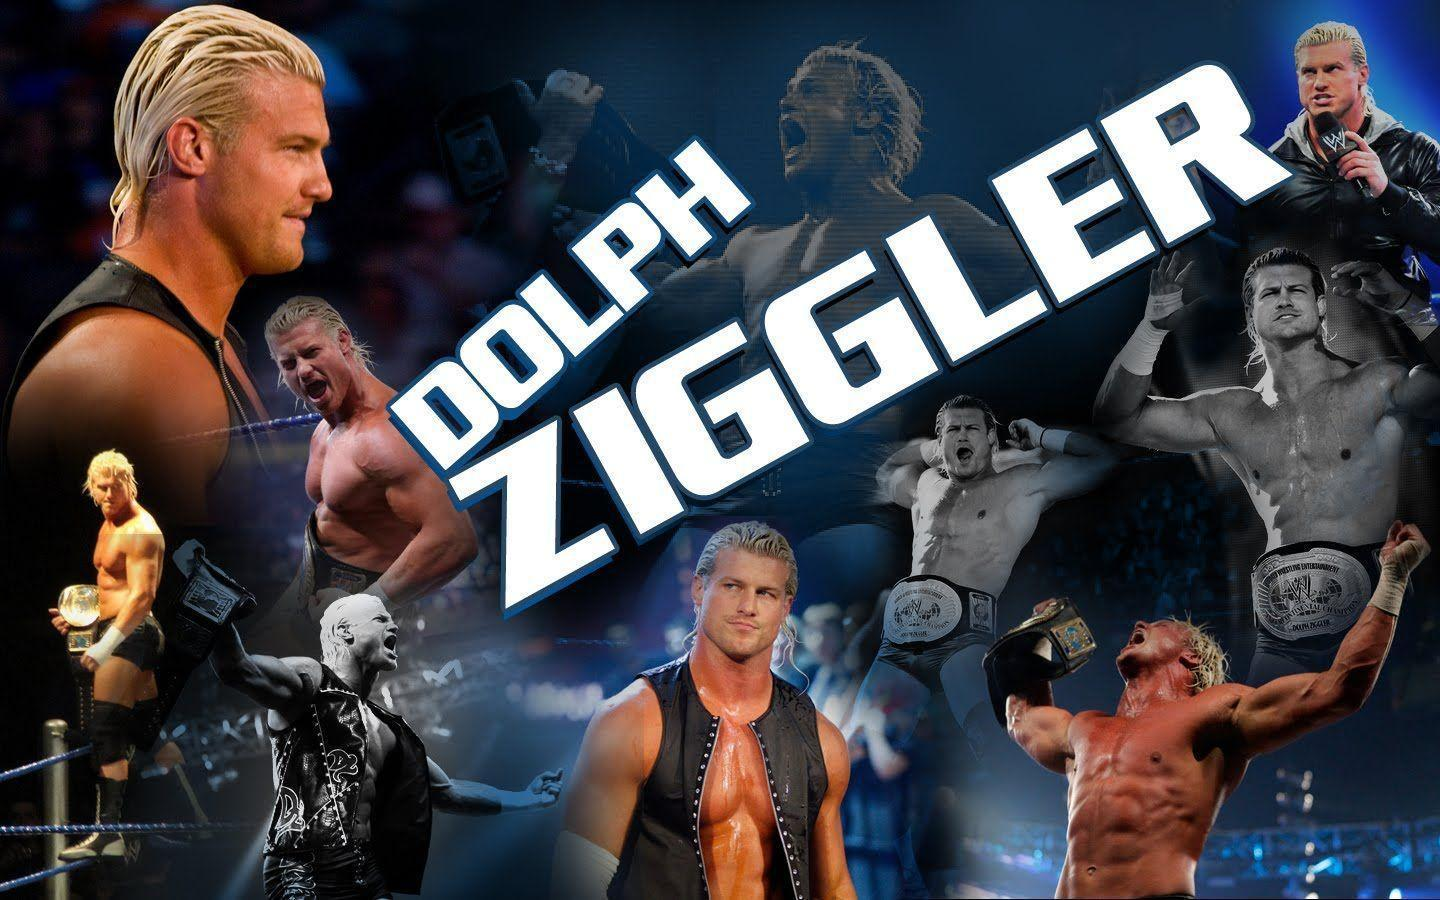 Dolph Ziggler WWE wallpaper ~ WWE Superstars,WWE wallpapers,WWE ...